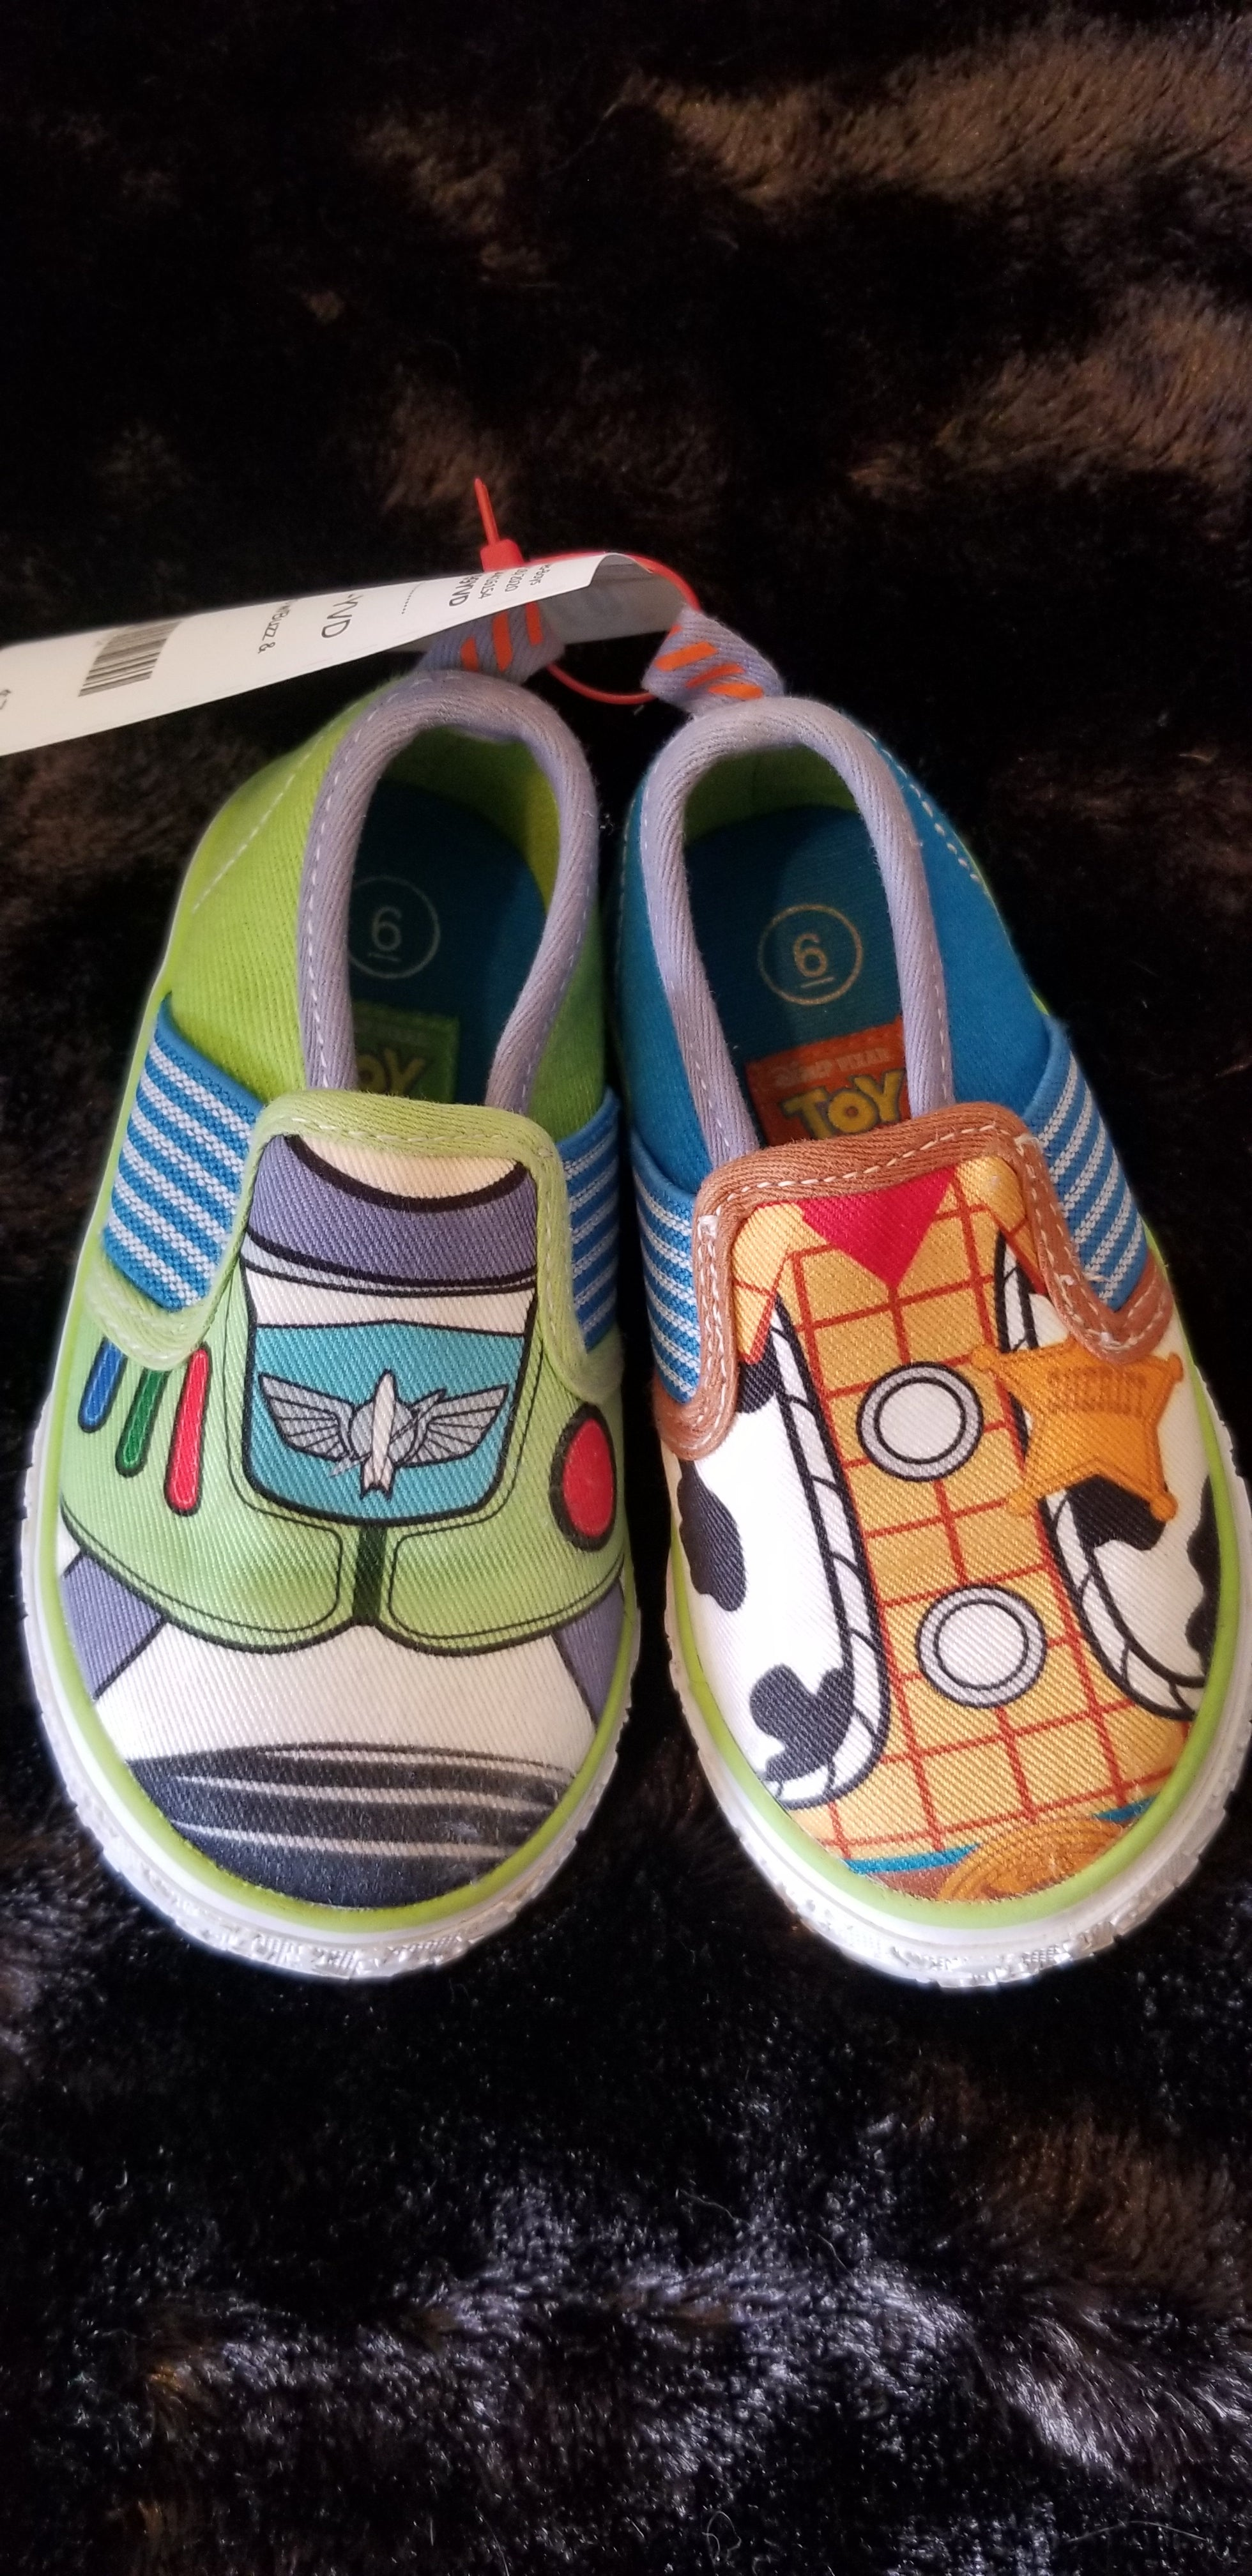 TOY STORY blue/green slip on shoes w/Buzz & Woody, sz 6